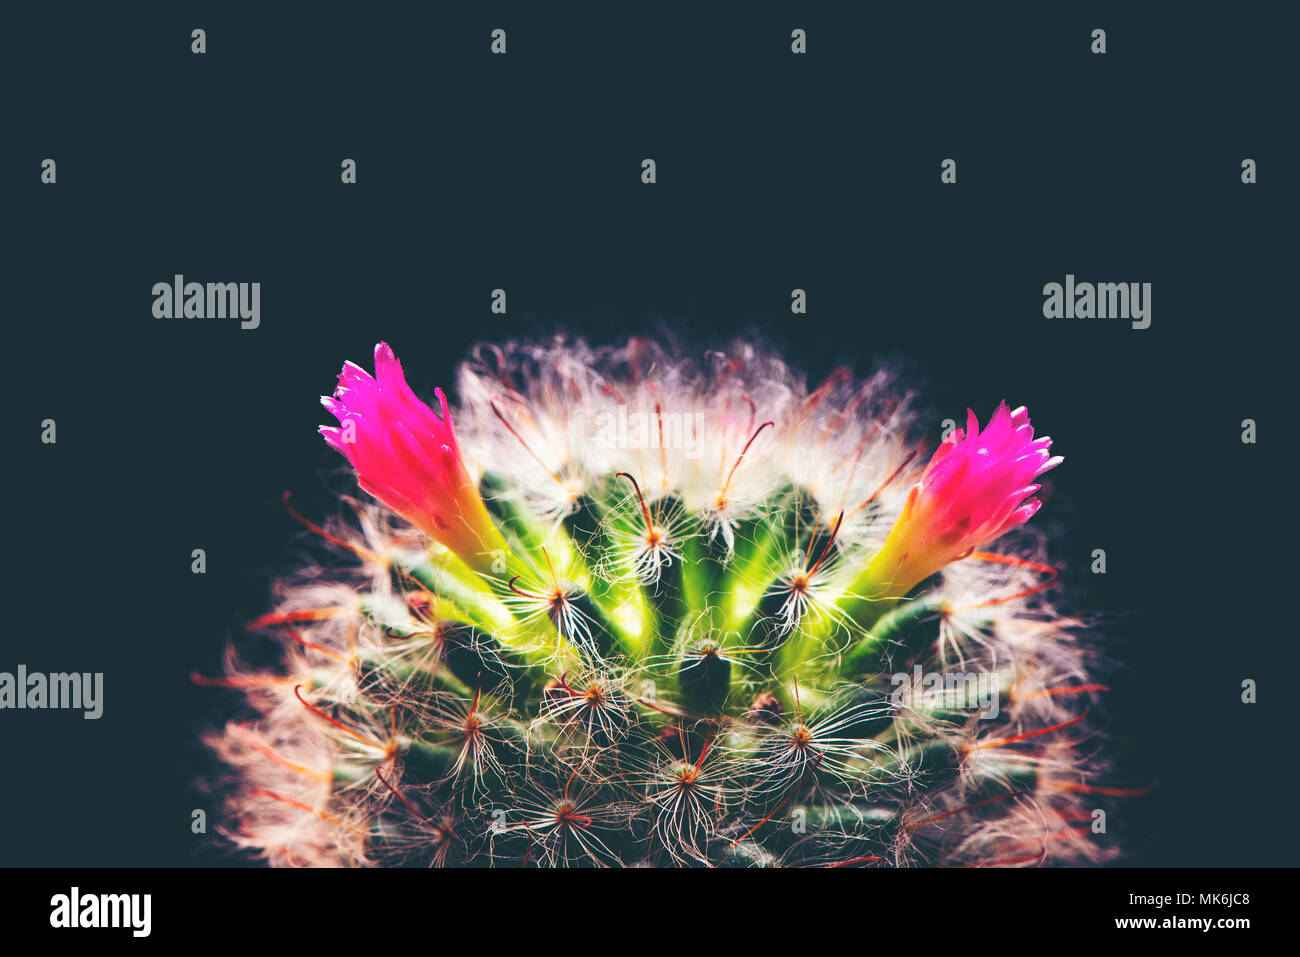 Beautiful Cactus Flower Blomming Isolated On Black Background Stock